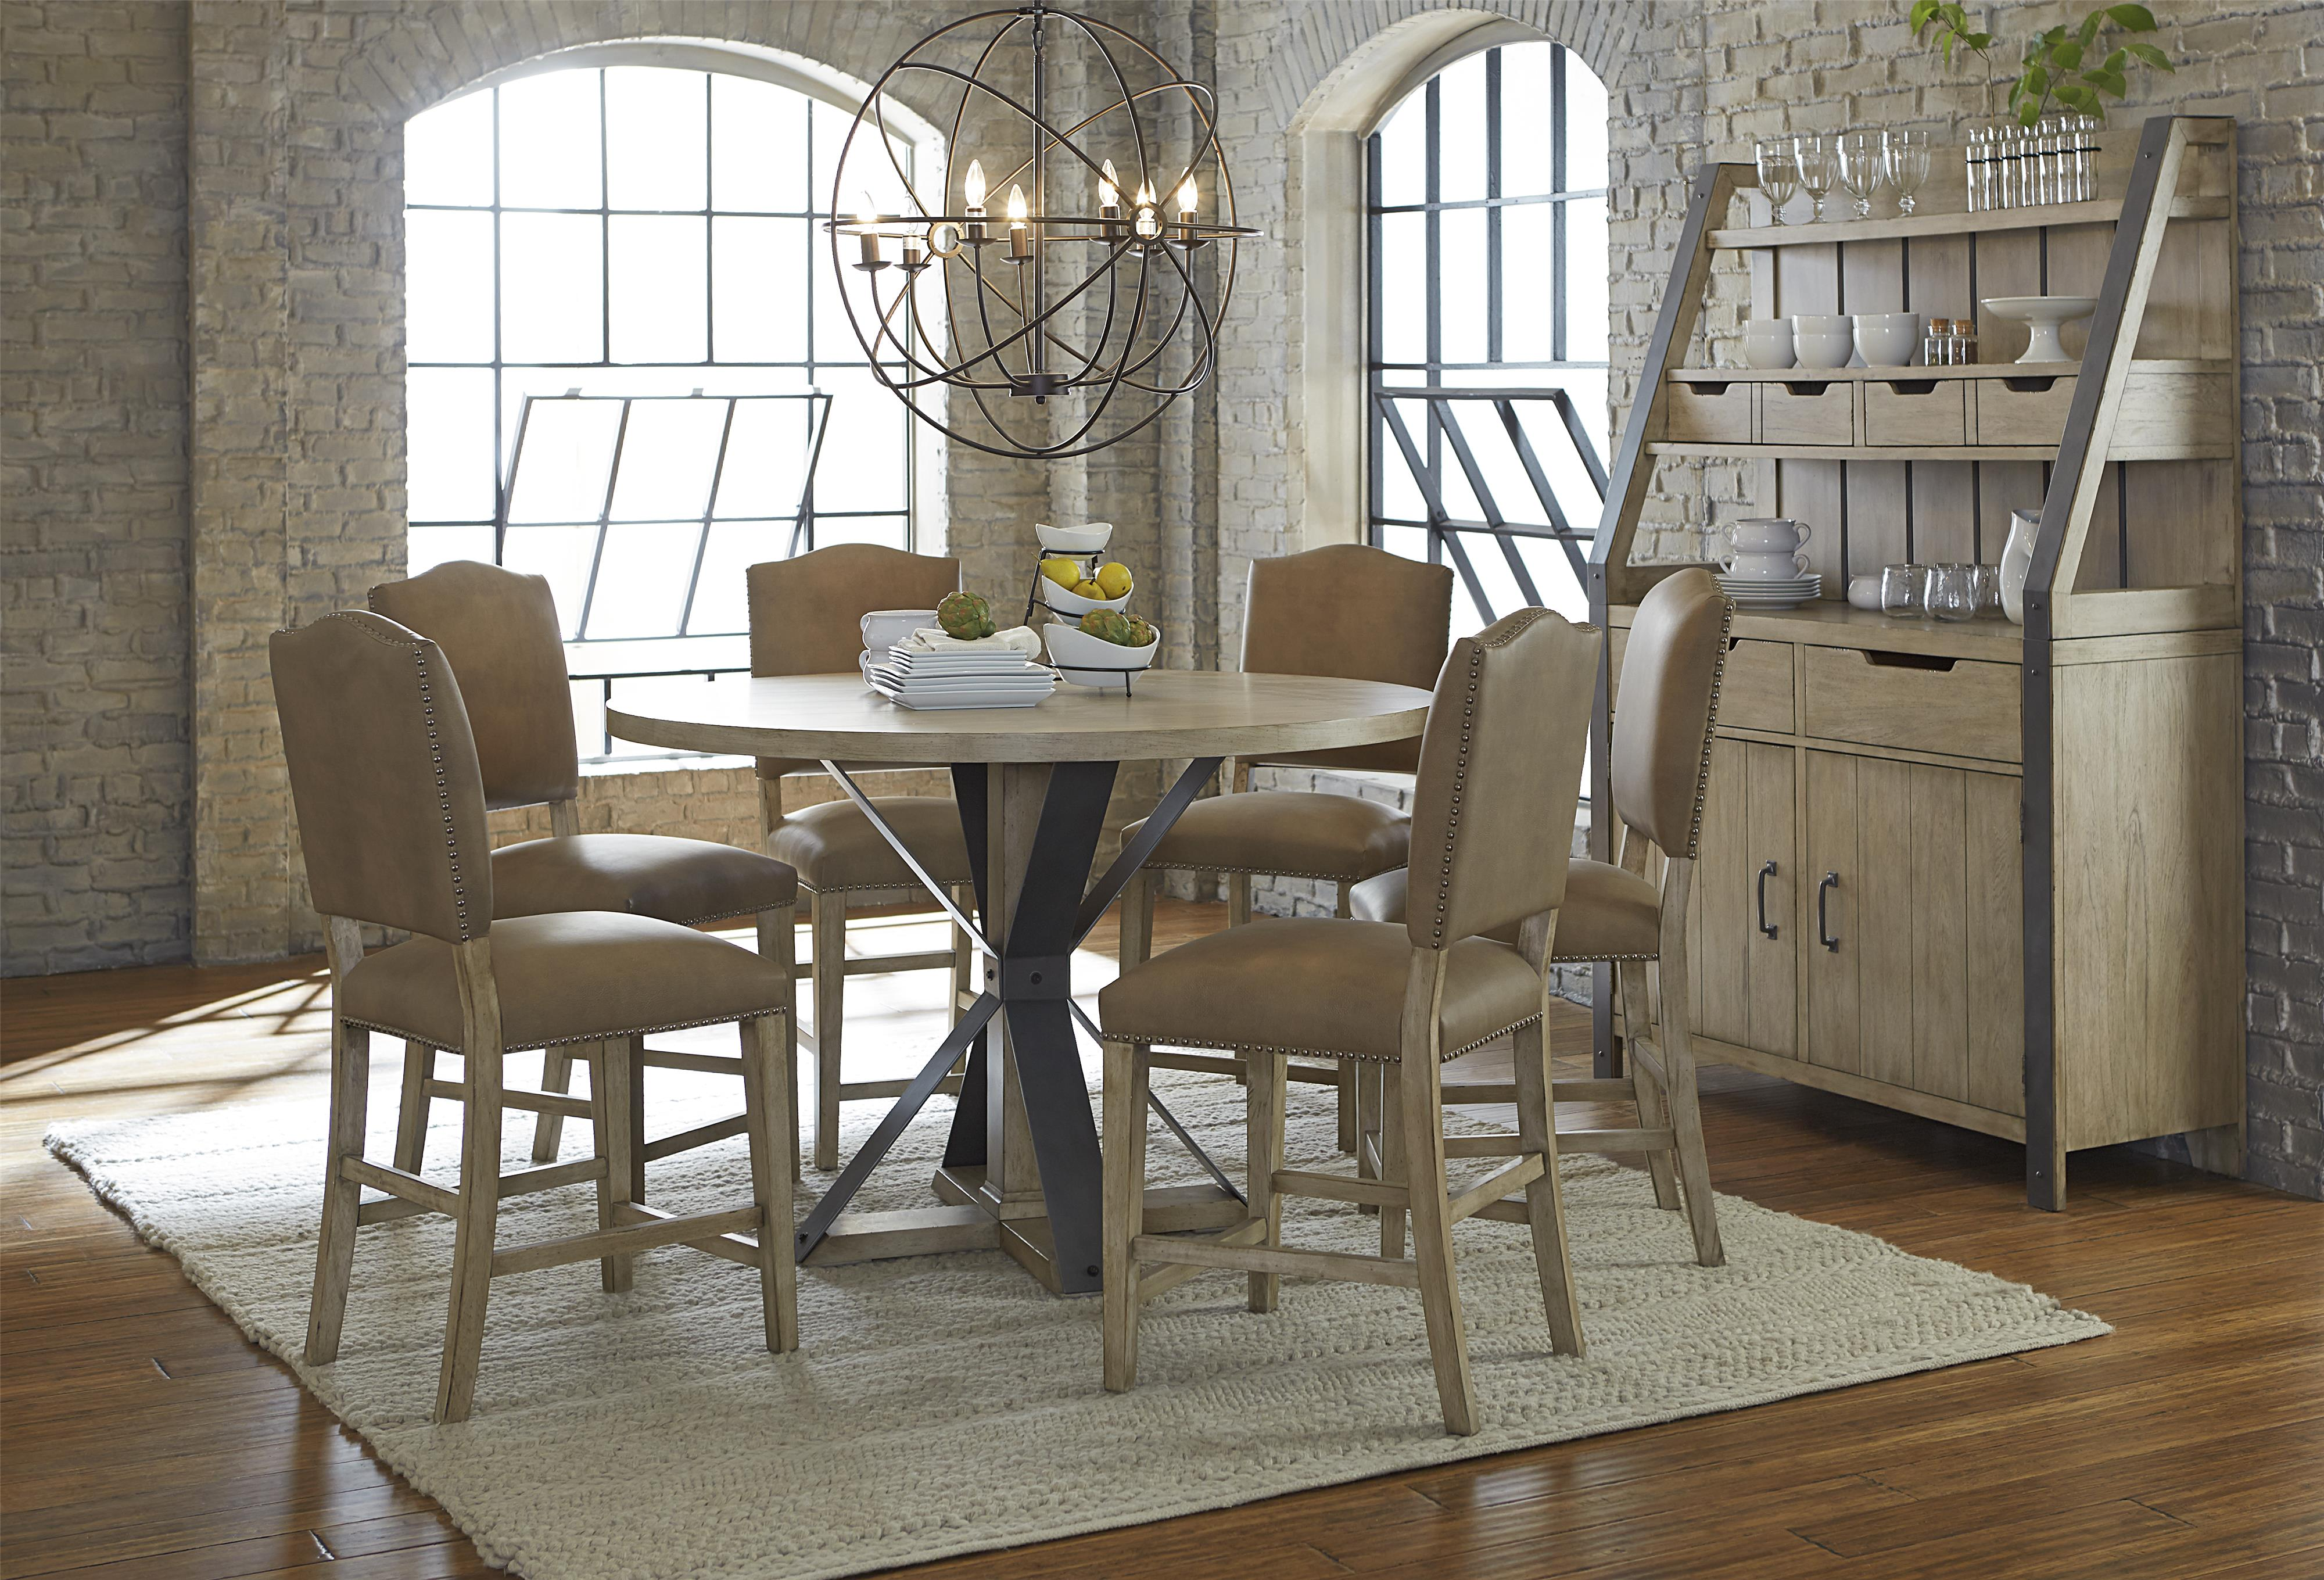 Progressive Furniture Shenandoah Casual Dining Room Group - Item Number: P870-12+6x63+83+82